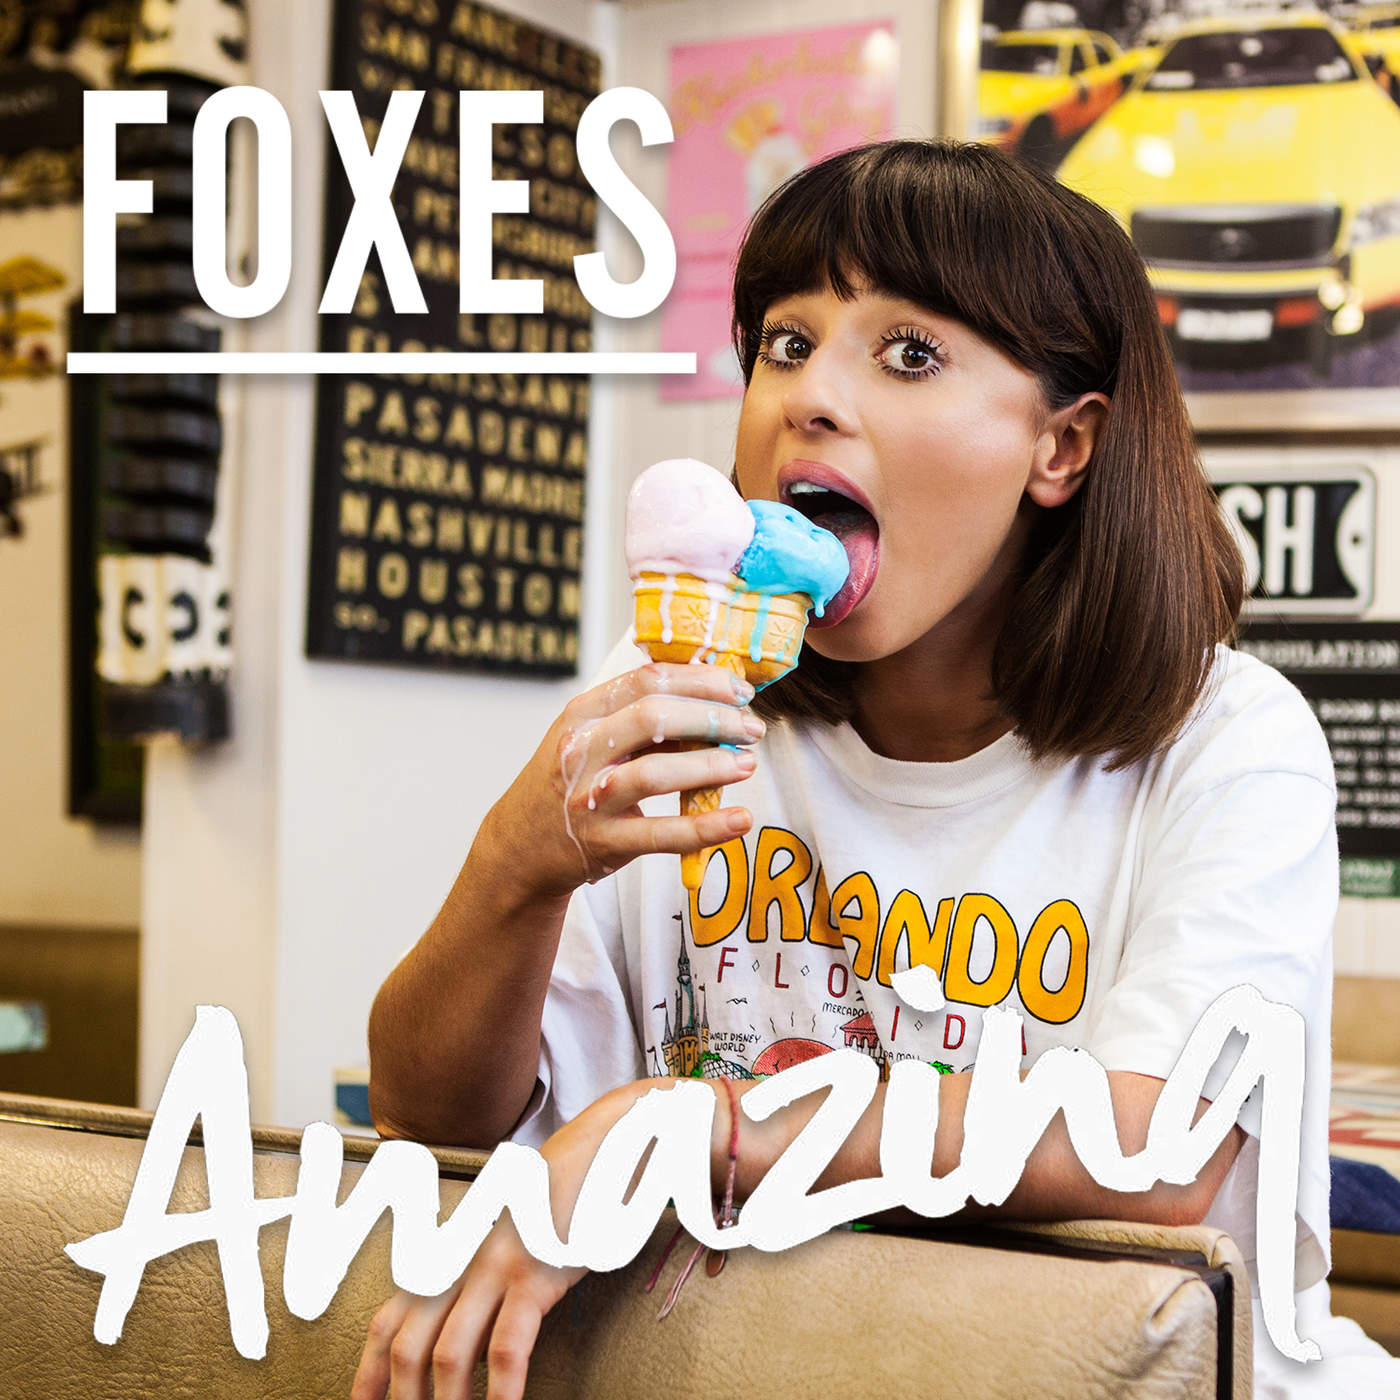 Foxes - Amazing - Single Cover